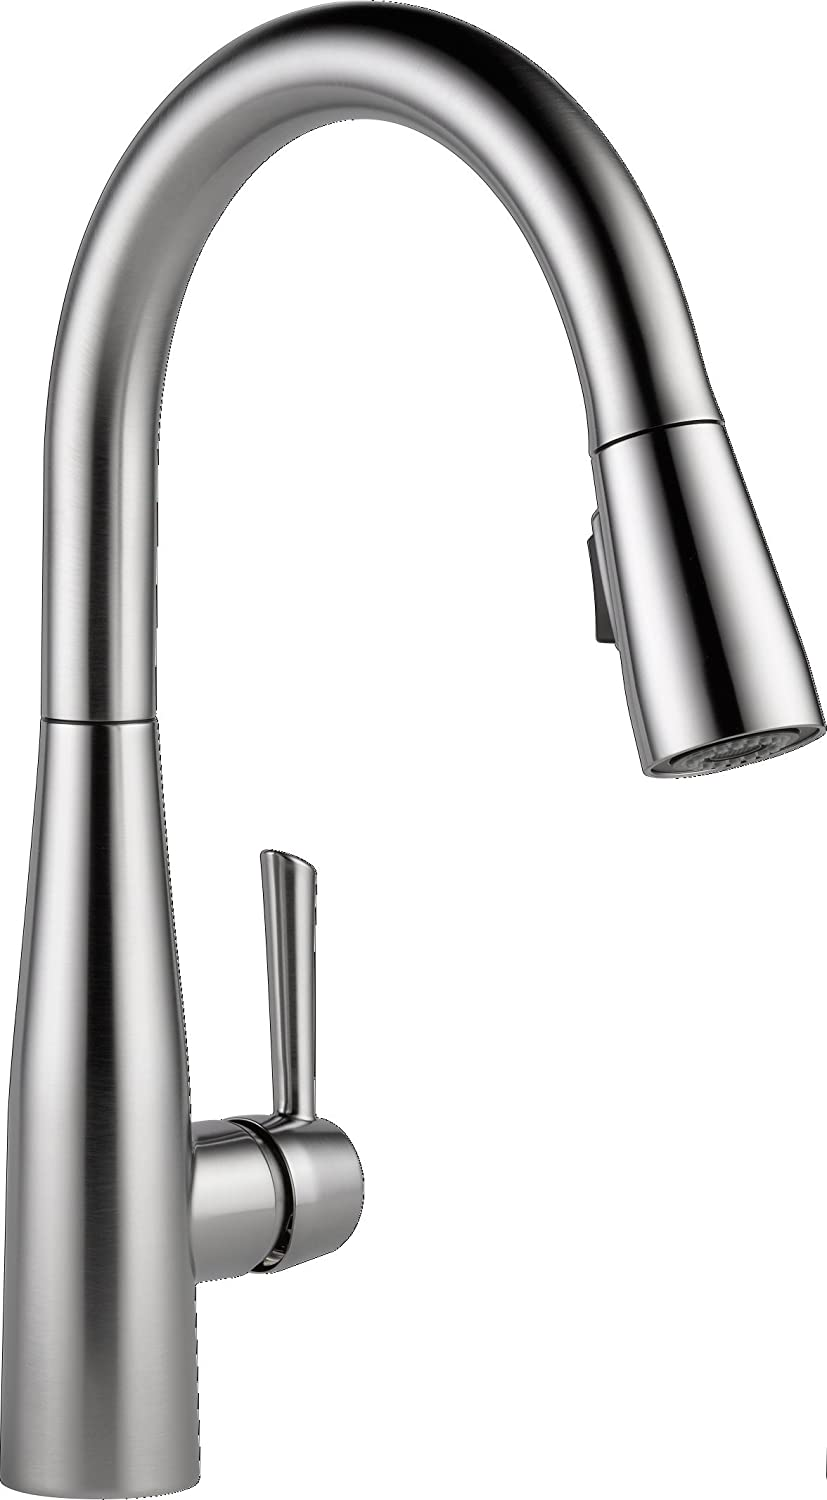 Essa Single-handle faucet by Delta